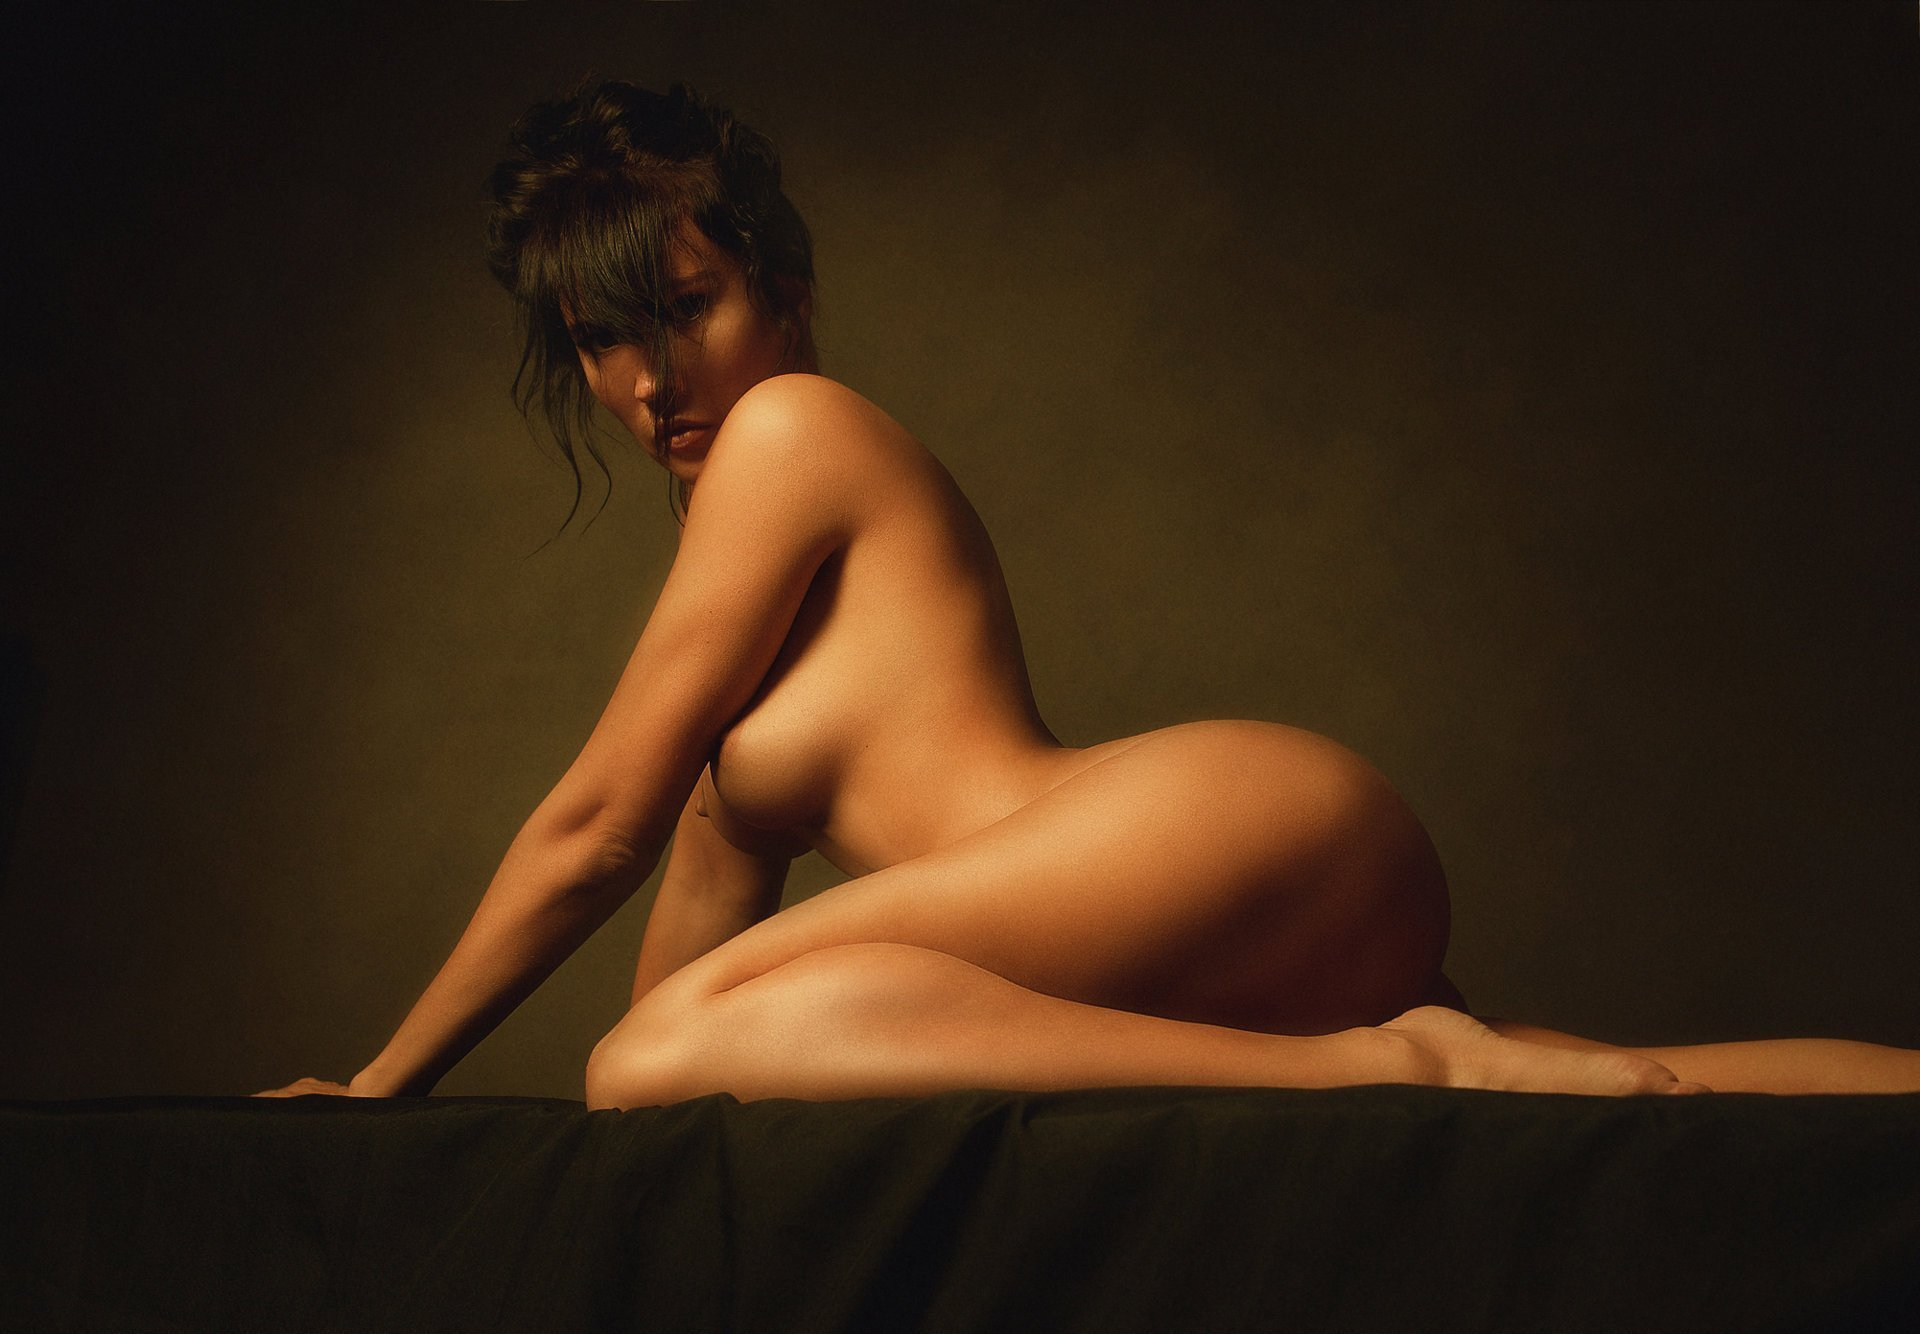 Busty nude woman standing